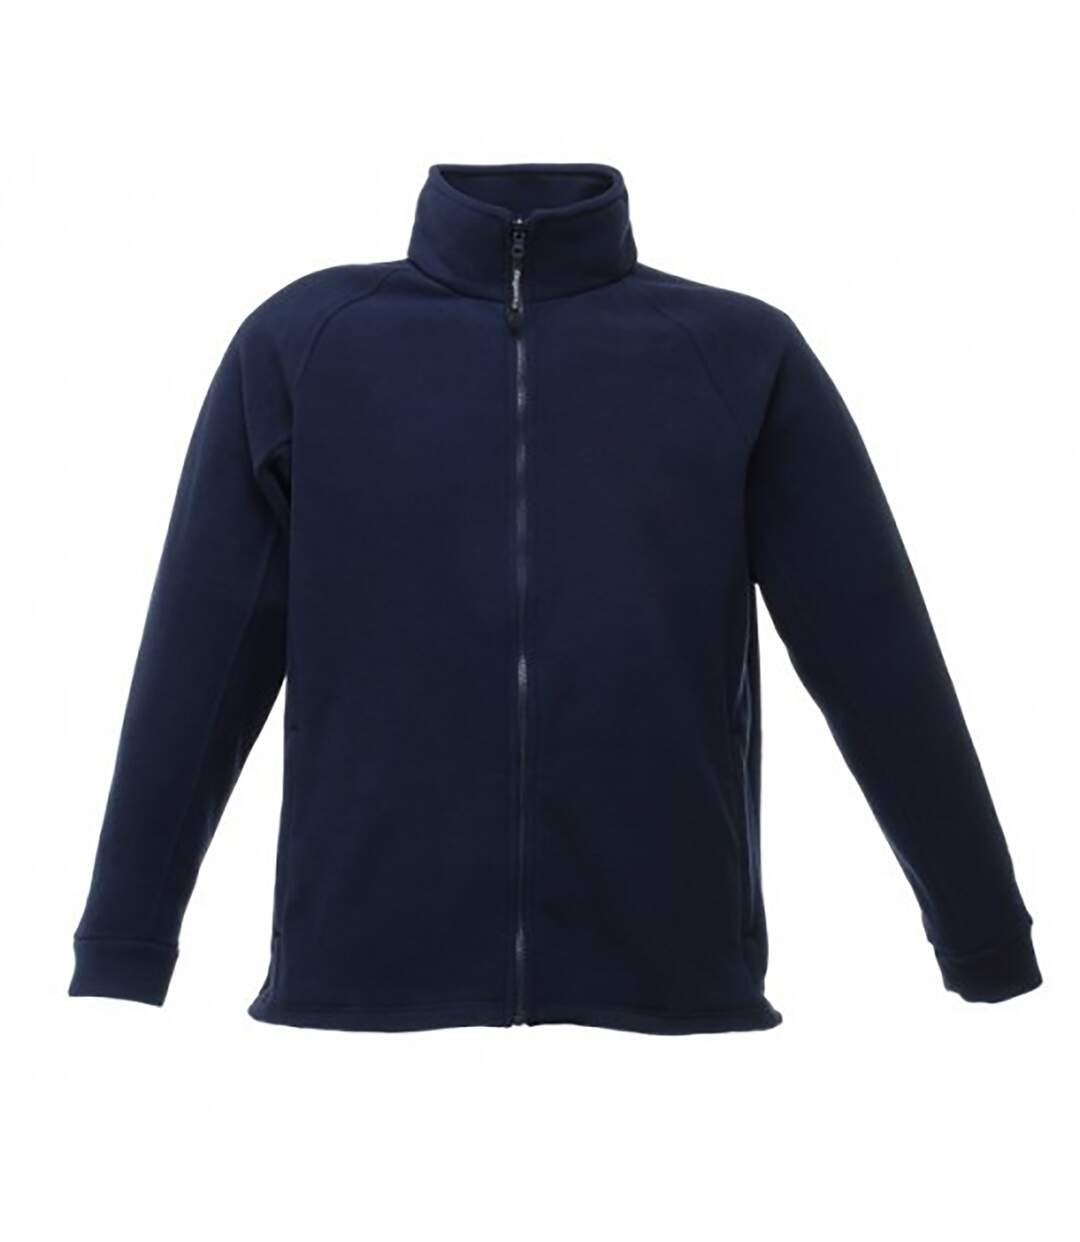 Regatta Mens Thor III Fleece Jacket (Dark Navy) - UTBC824